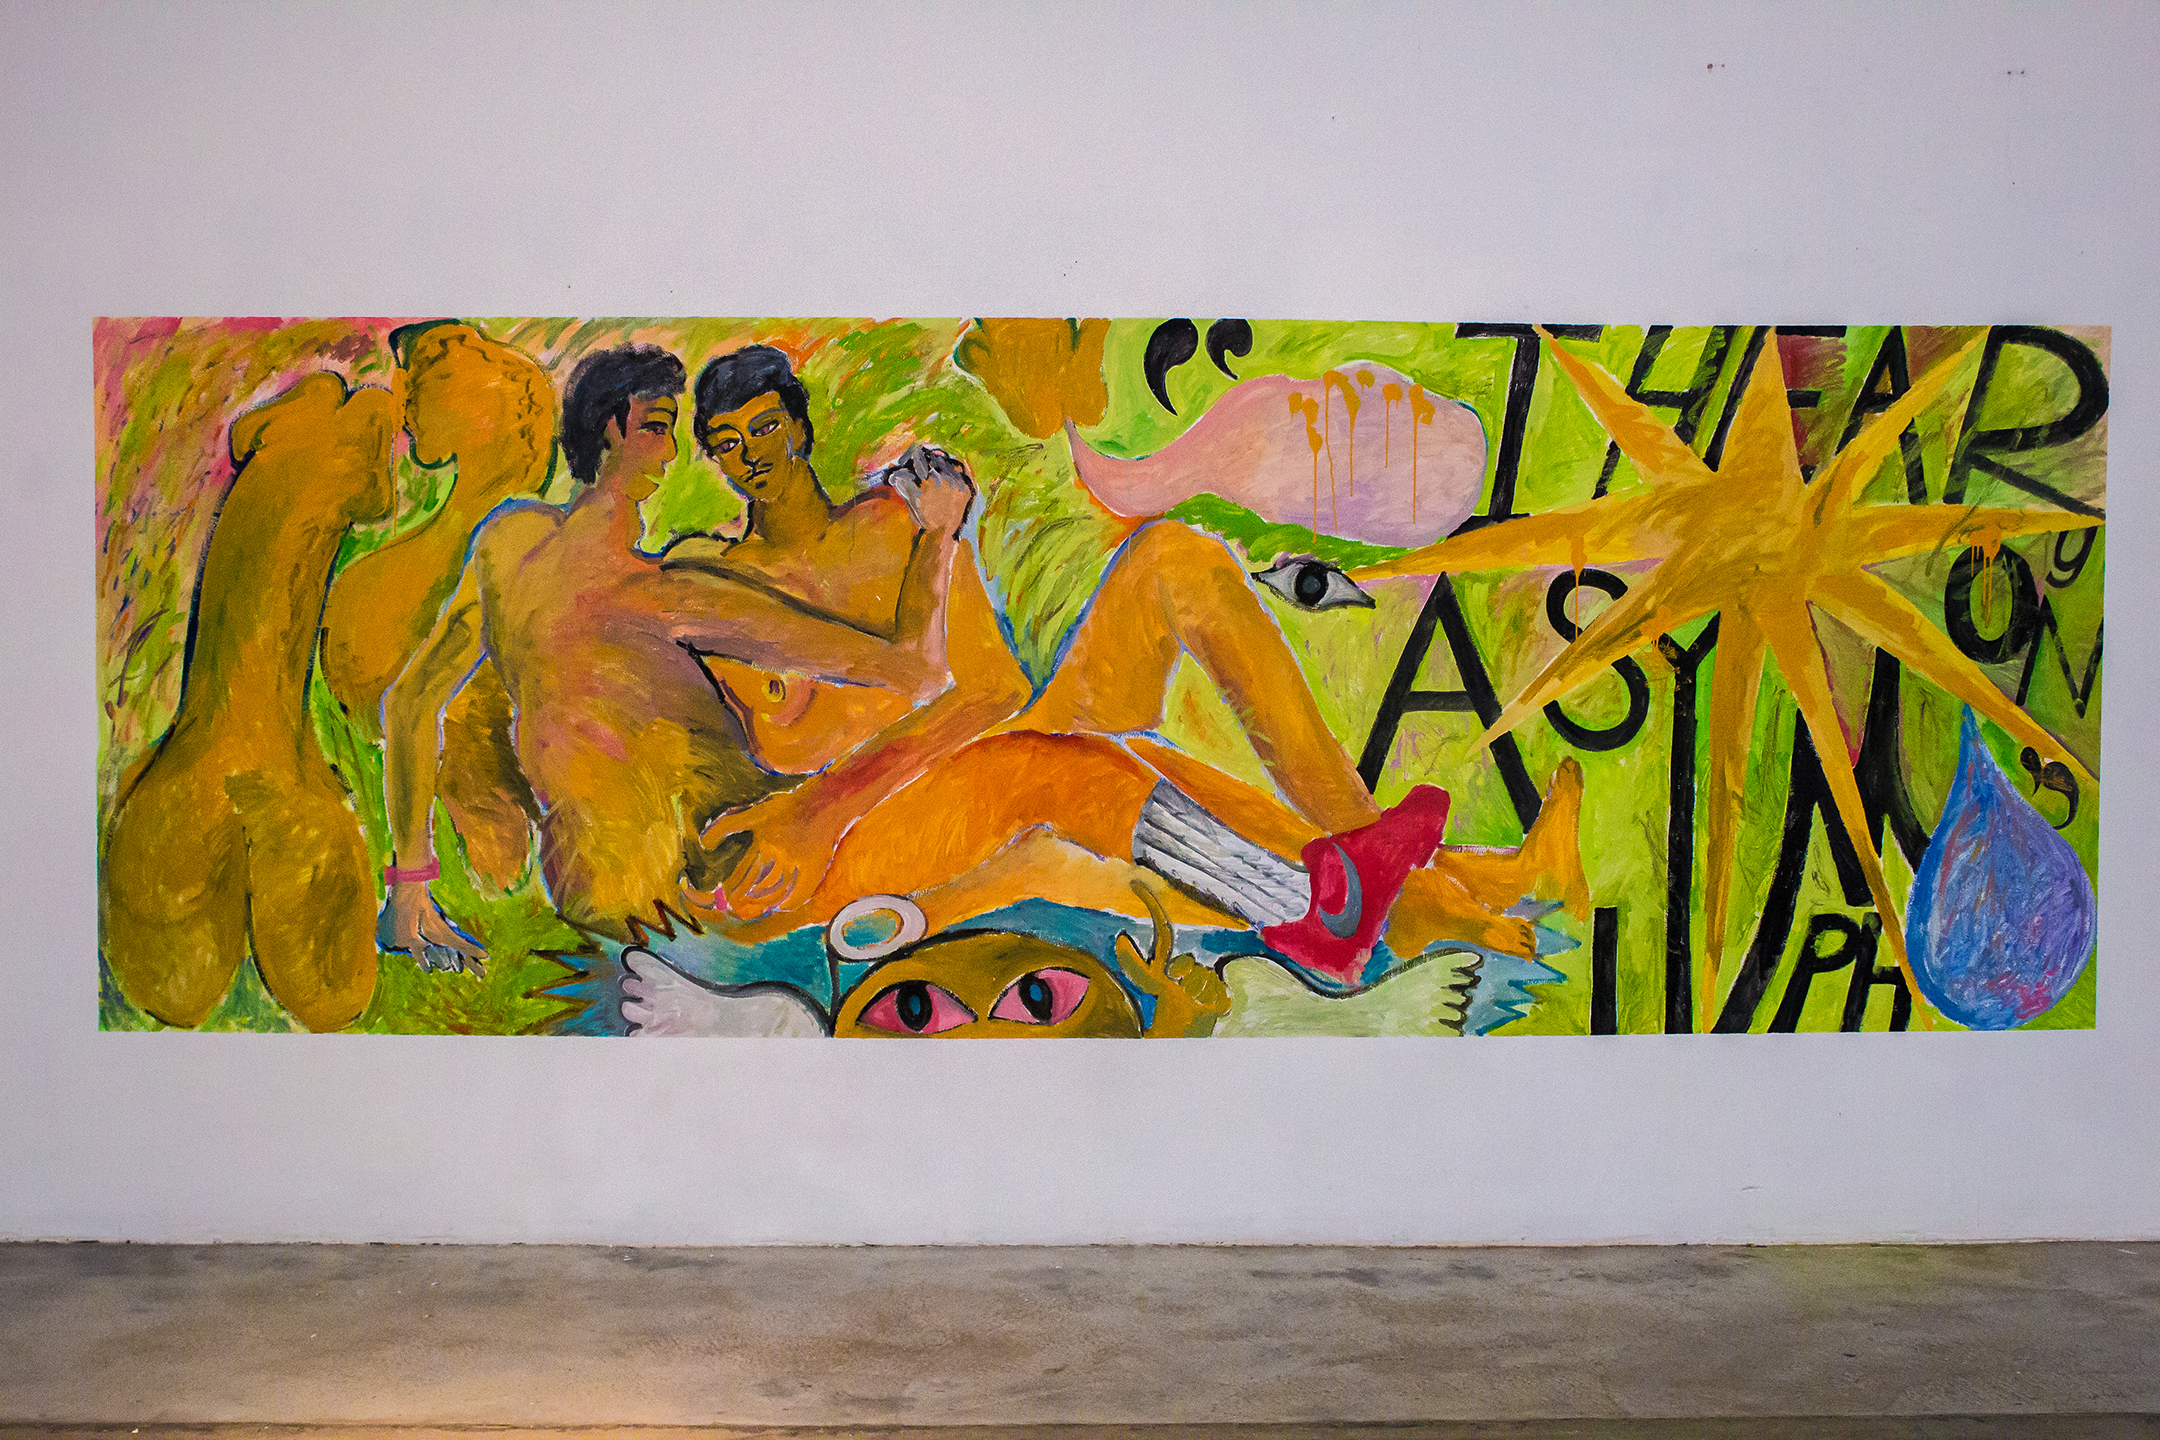 """Another dream, but more like an apparition, distorted and unclear ,  2019, acrylic and primer on wall, 5.5 ft x 18 ft  Ephemeral mural painted for """" Walking in the Sun,""""  a Filipinx/Pacific-Islander exhibition at  Human Resources LA  dealing with colorism within the East-Asian American Community.  Curated by Robben Muñoz & Jennelyn Tumalad."""